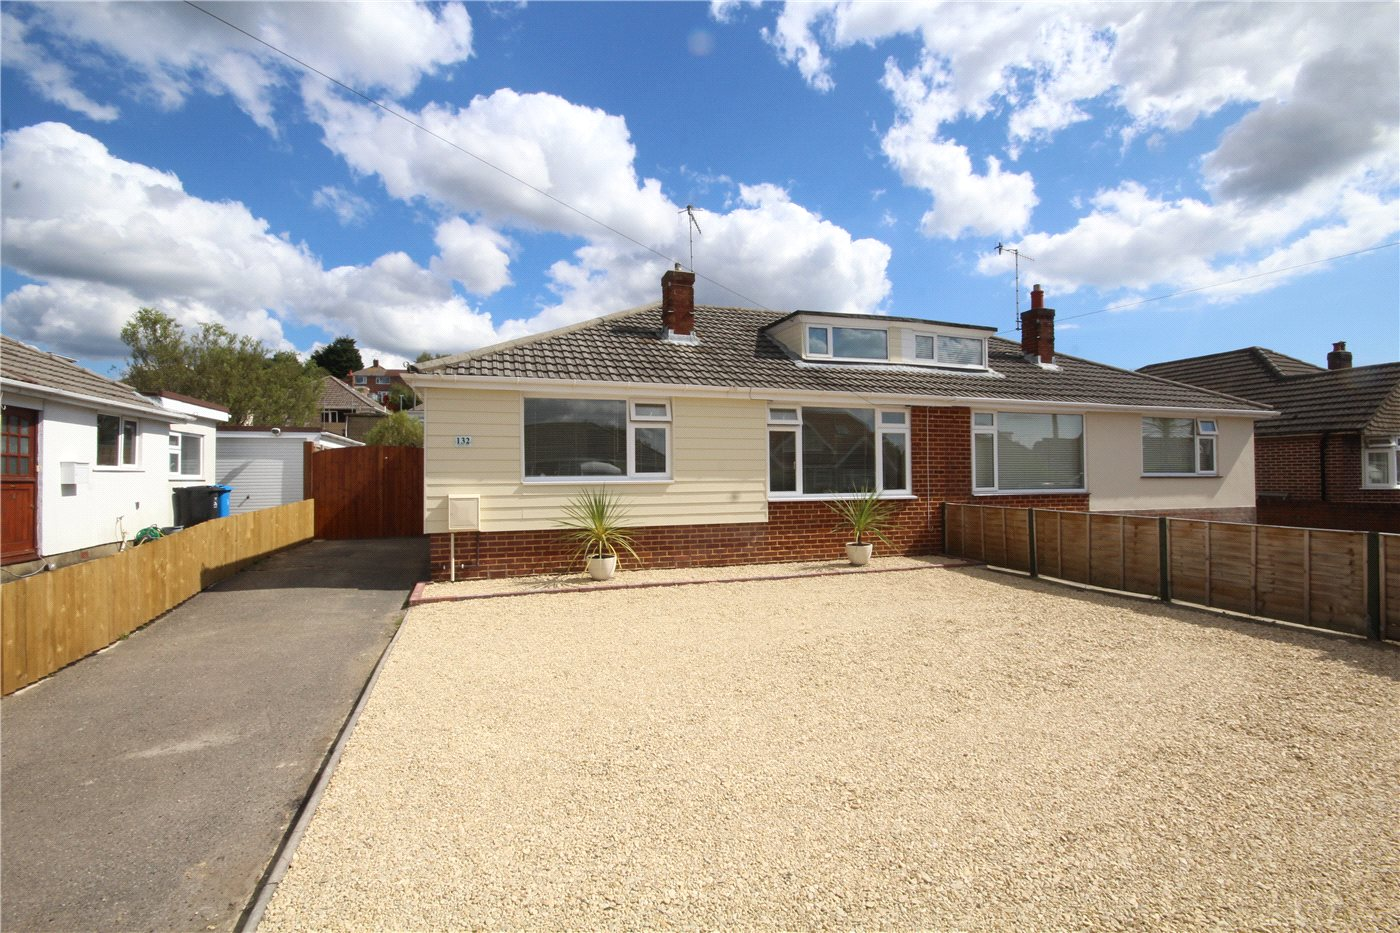 3 Bedrooms Bungalow for sale in Foxholes Road, Poole, Dorset, BH15